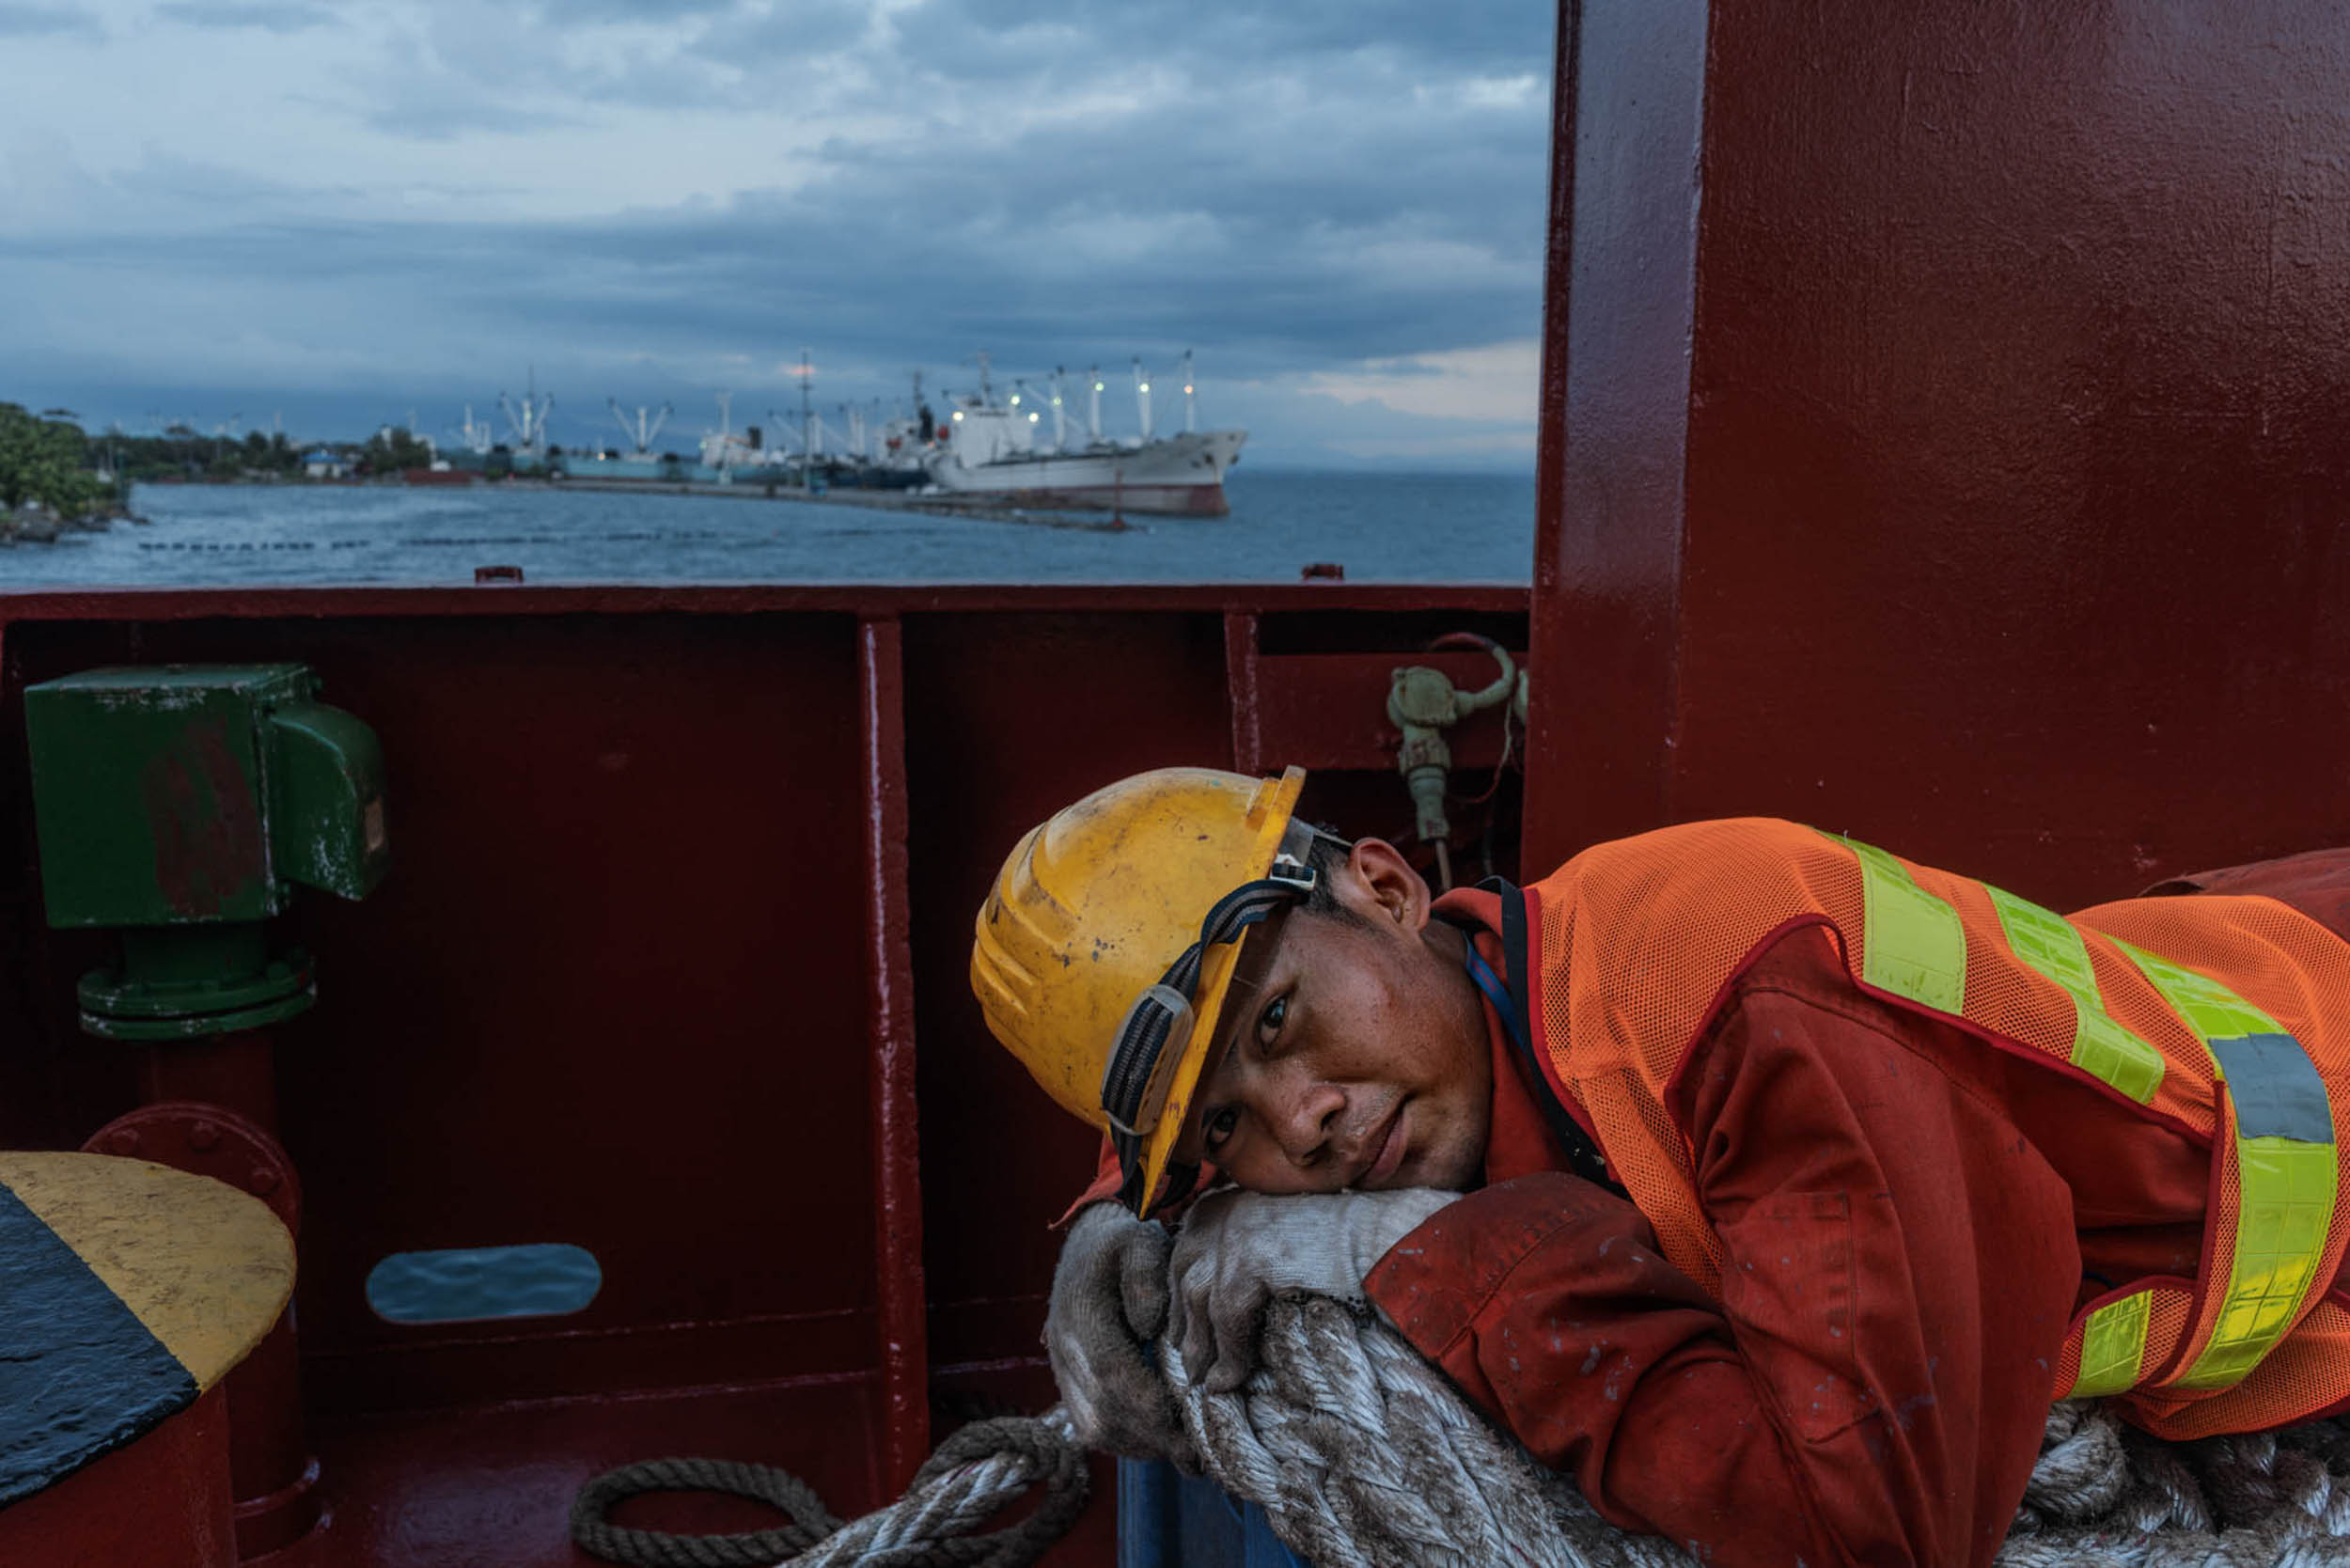 Photo by @hannahreyesmorales. Ian Pineda, a merchant sailor, lies on a spool of rope on the deck of a cargo ship. Filipino seafarers are explorers in their own right: they've explored the world's seas. Seasoned seafarers have endless stories spanning oceans and ports across dozens of countries. But they all tell a common tale: of missing home, the Philippines. It is estimated that at least 1 in 4 of the world's mariners are Filipino.